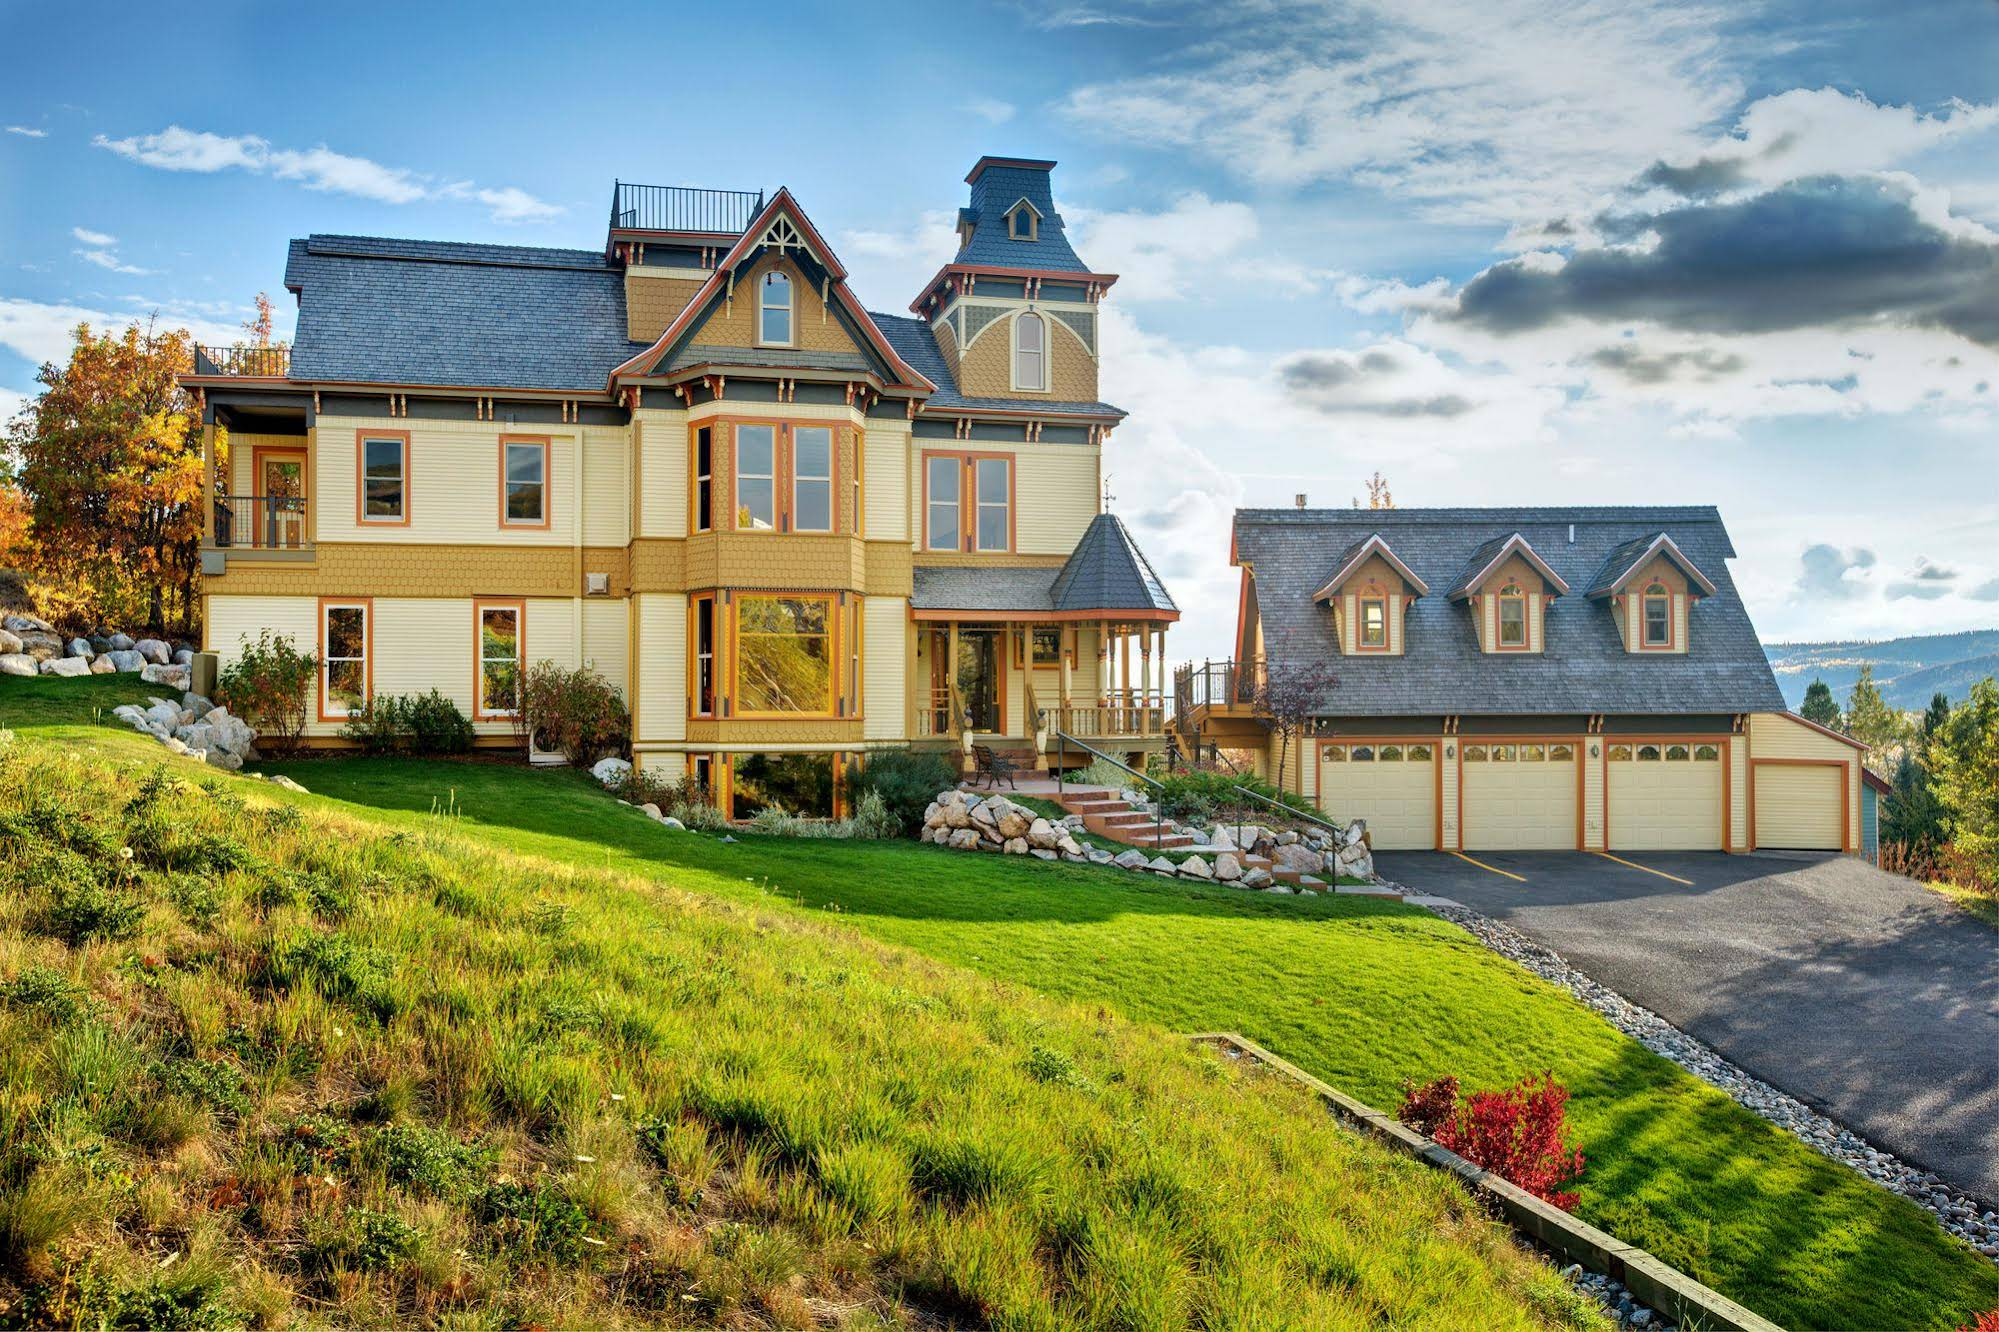 The Victorian Luxury B and B